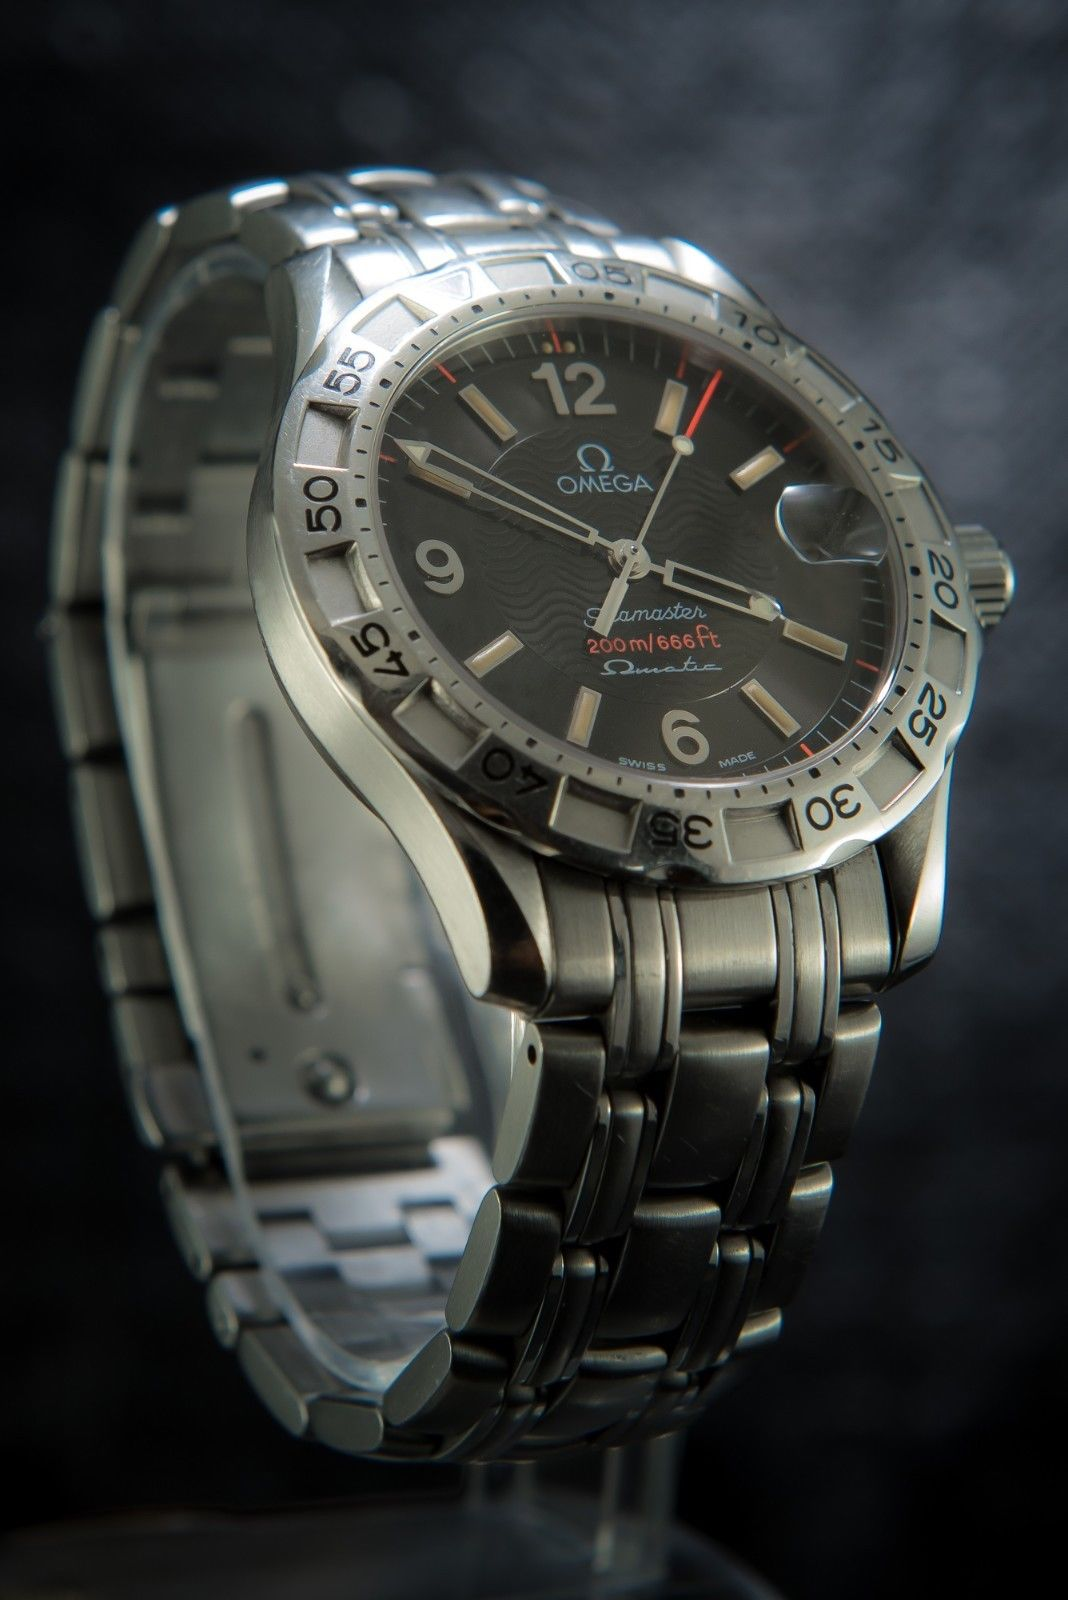 Deluxe Auto Parts >> Omega Seamaster Vintage Hybrid Autoquartz Omegamatic - 2514.50.00 | Pawn Deluxe